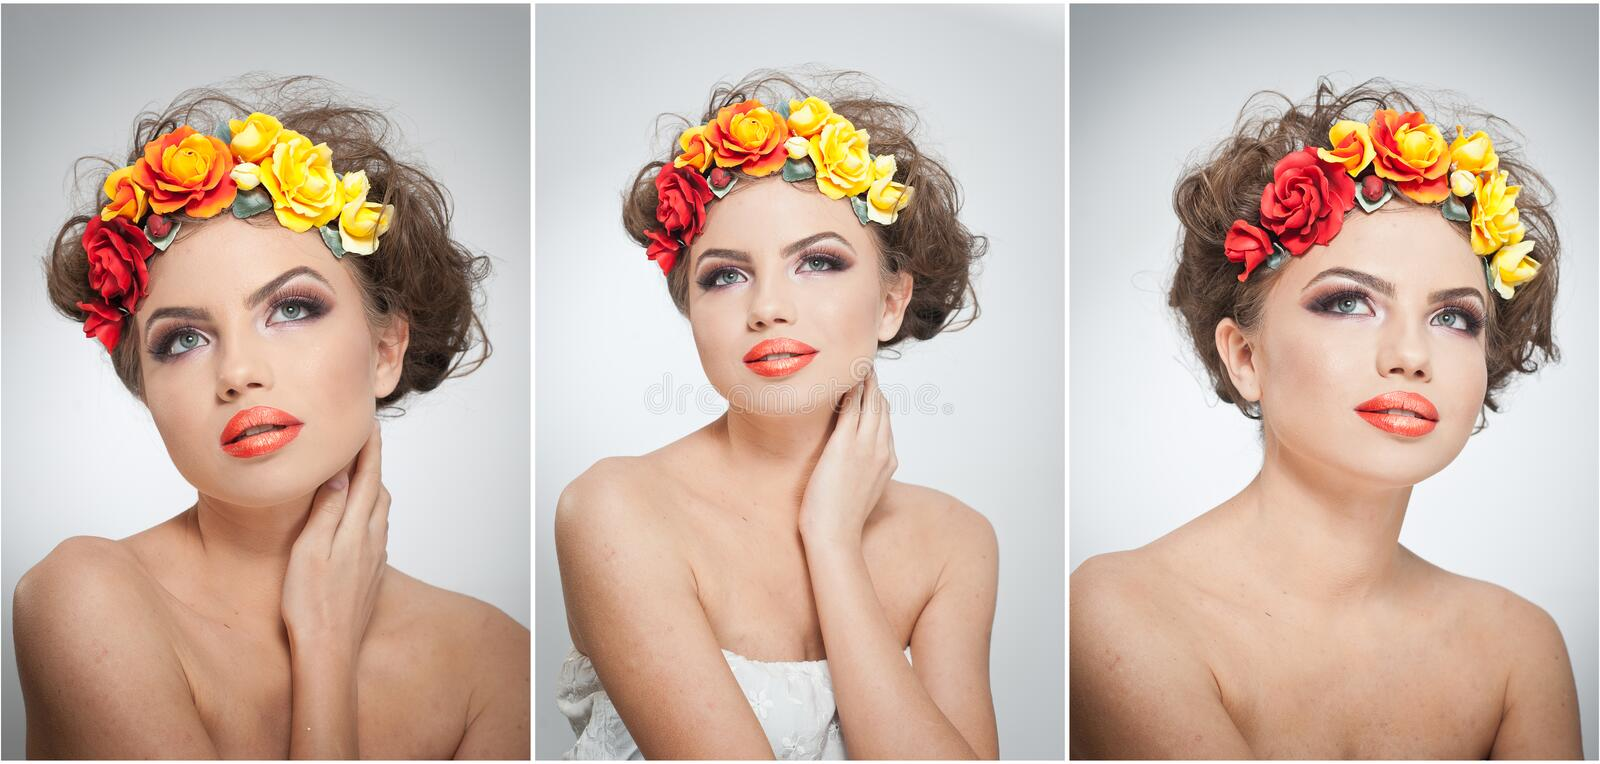 Portrait of beautiful girl in studio with yellow and red roses in her hair and naked shoulders. young woman stock photography